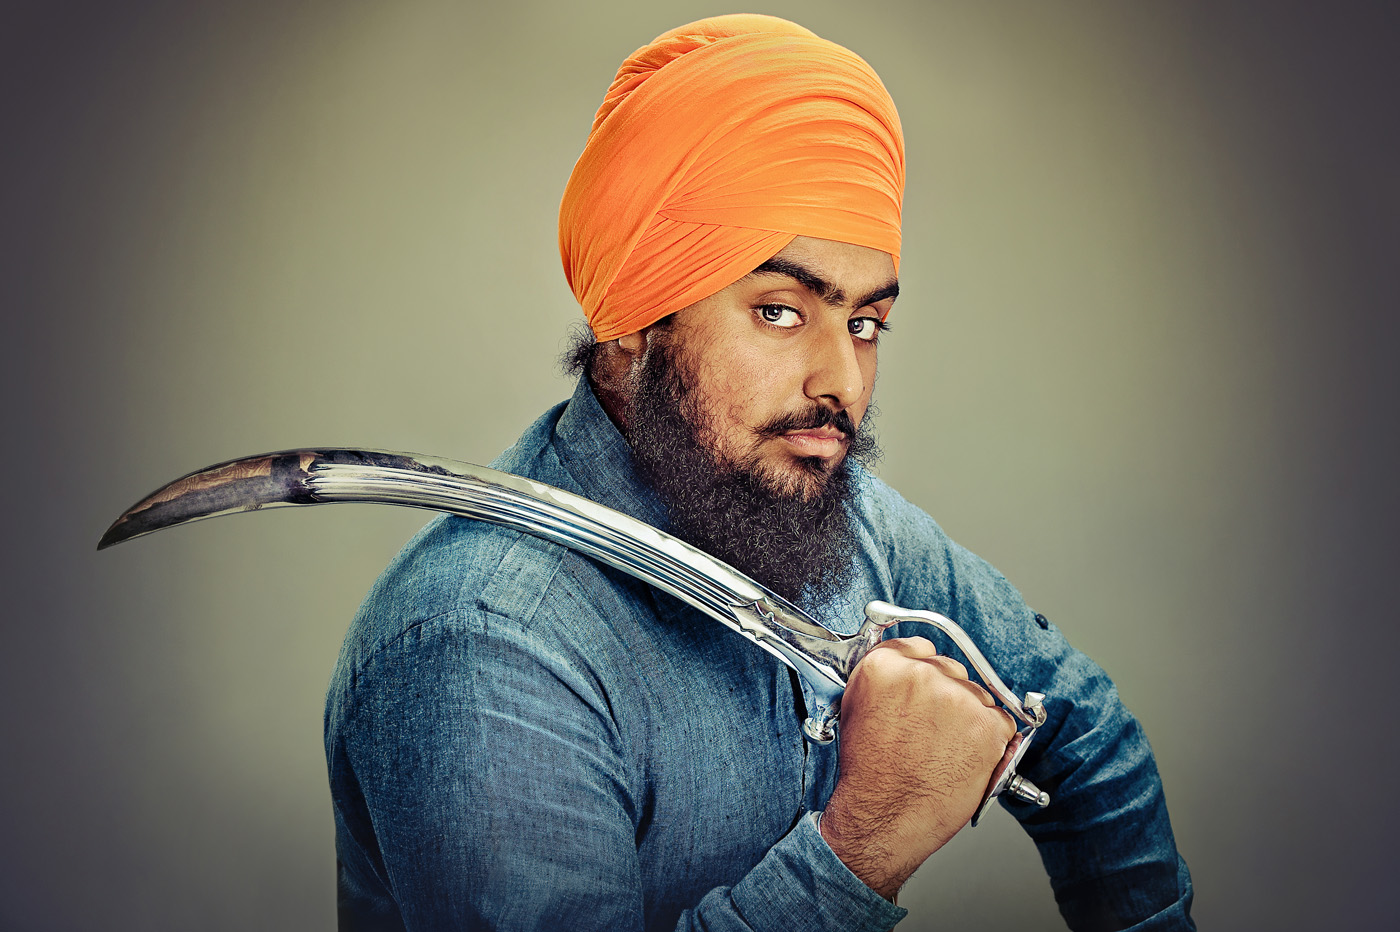 Portrait from The Singh Project